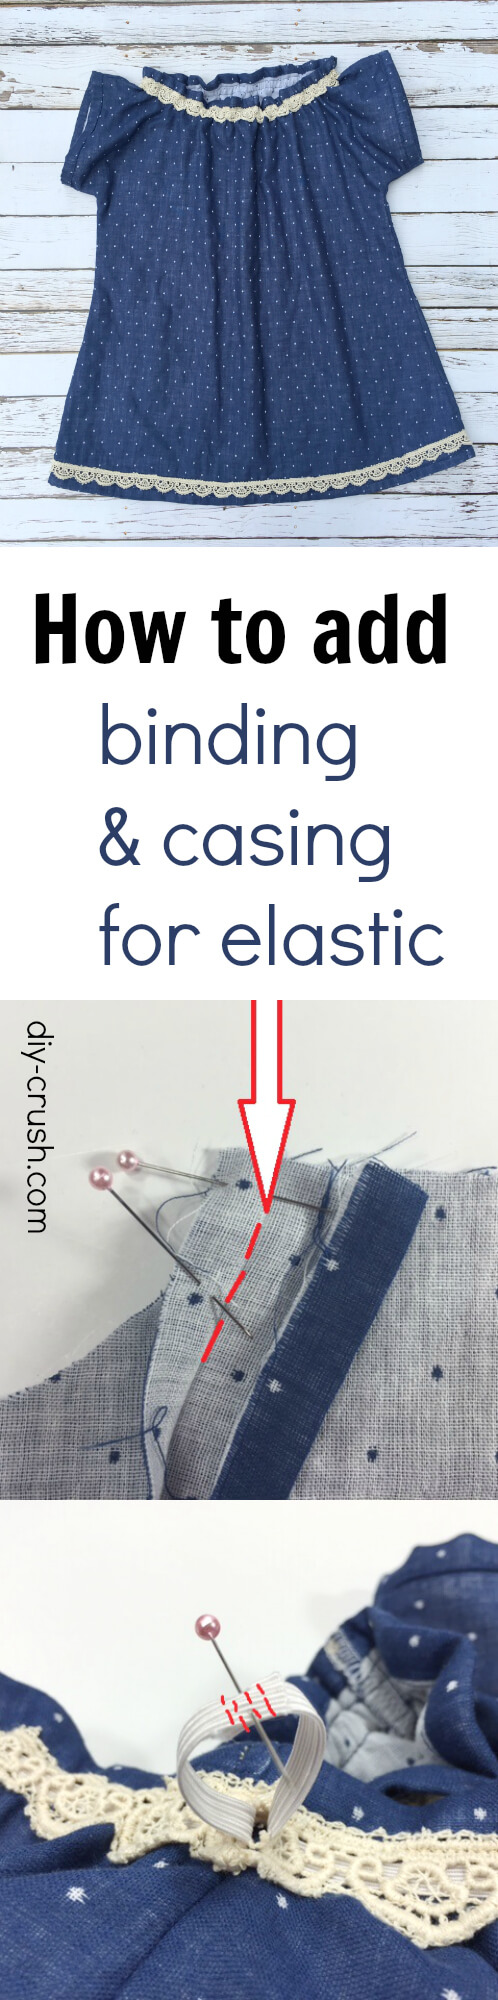 How to add binding & casing for elastic